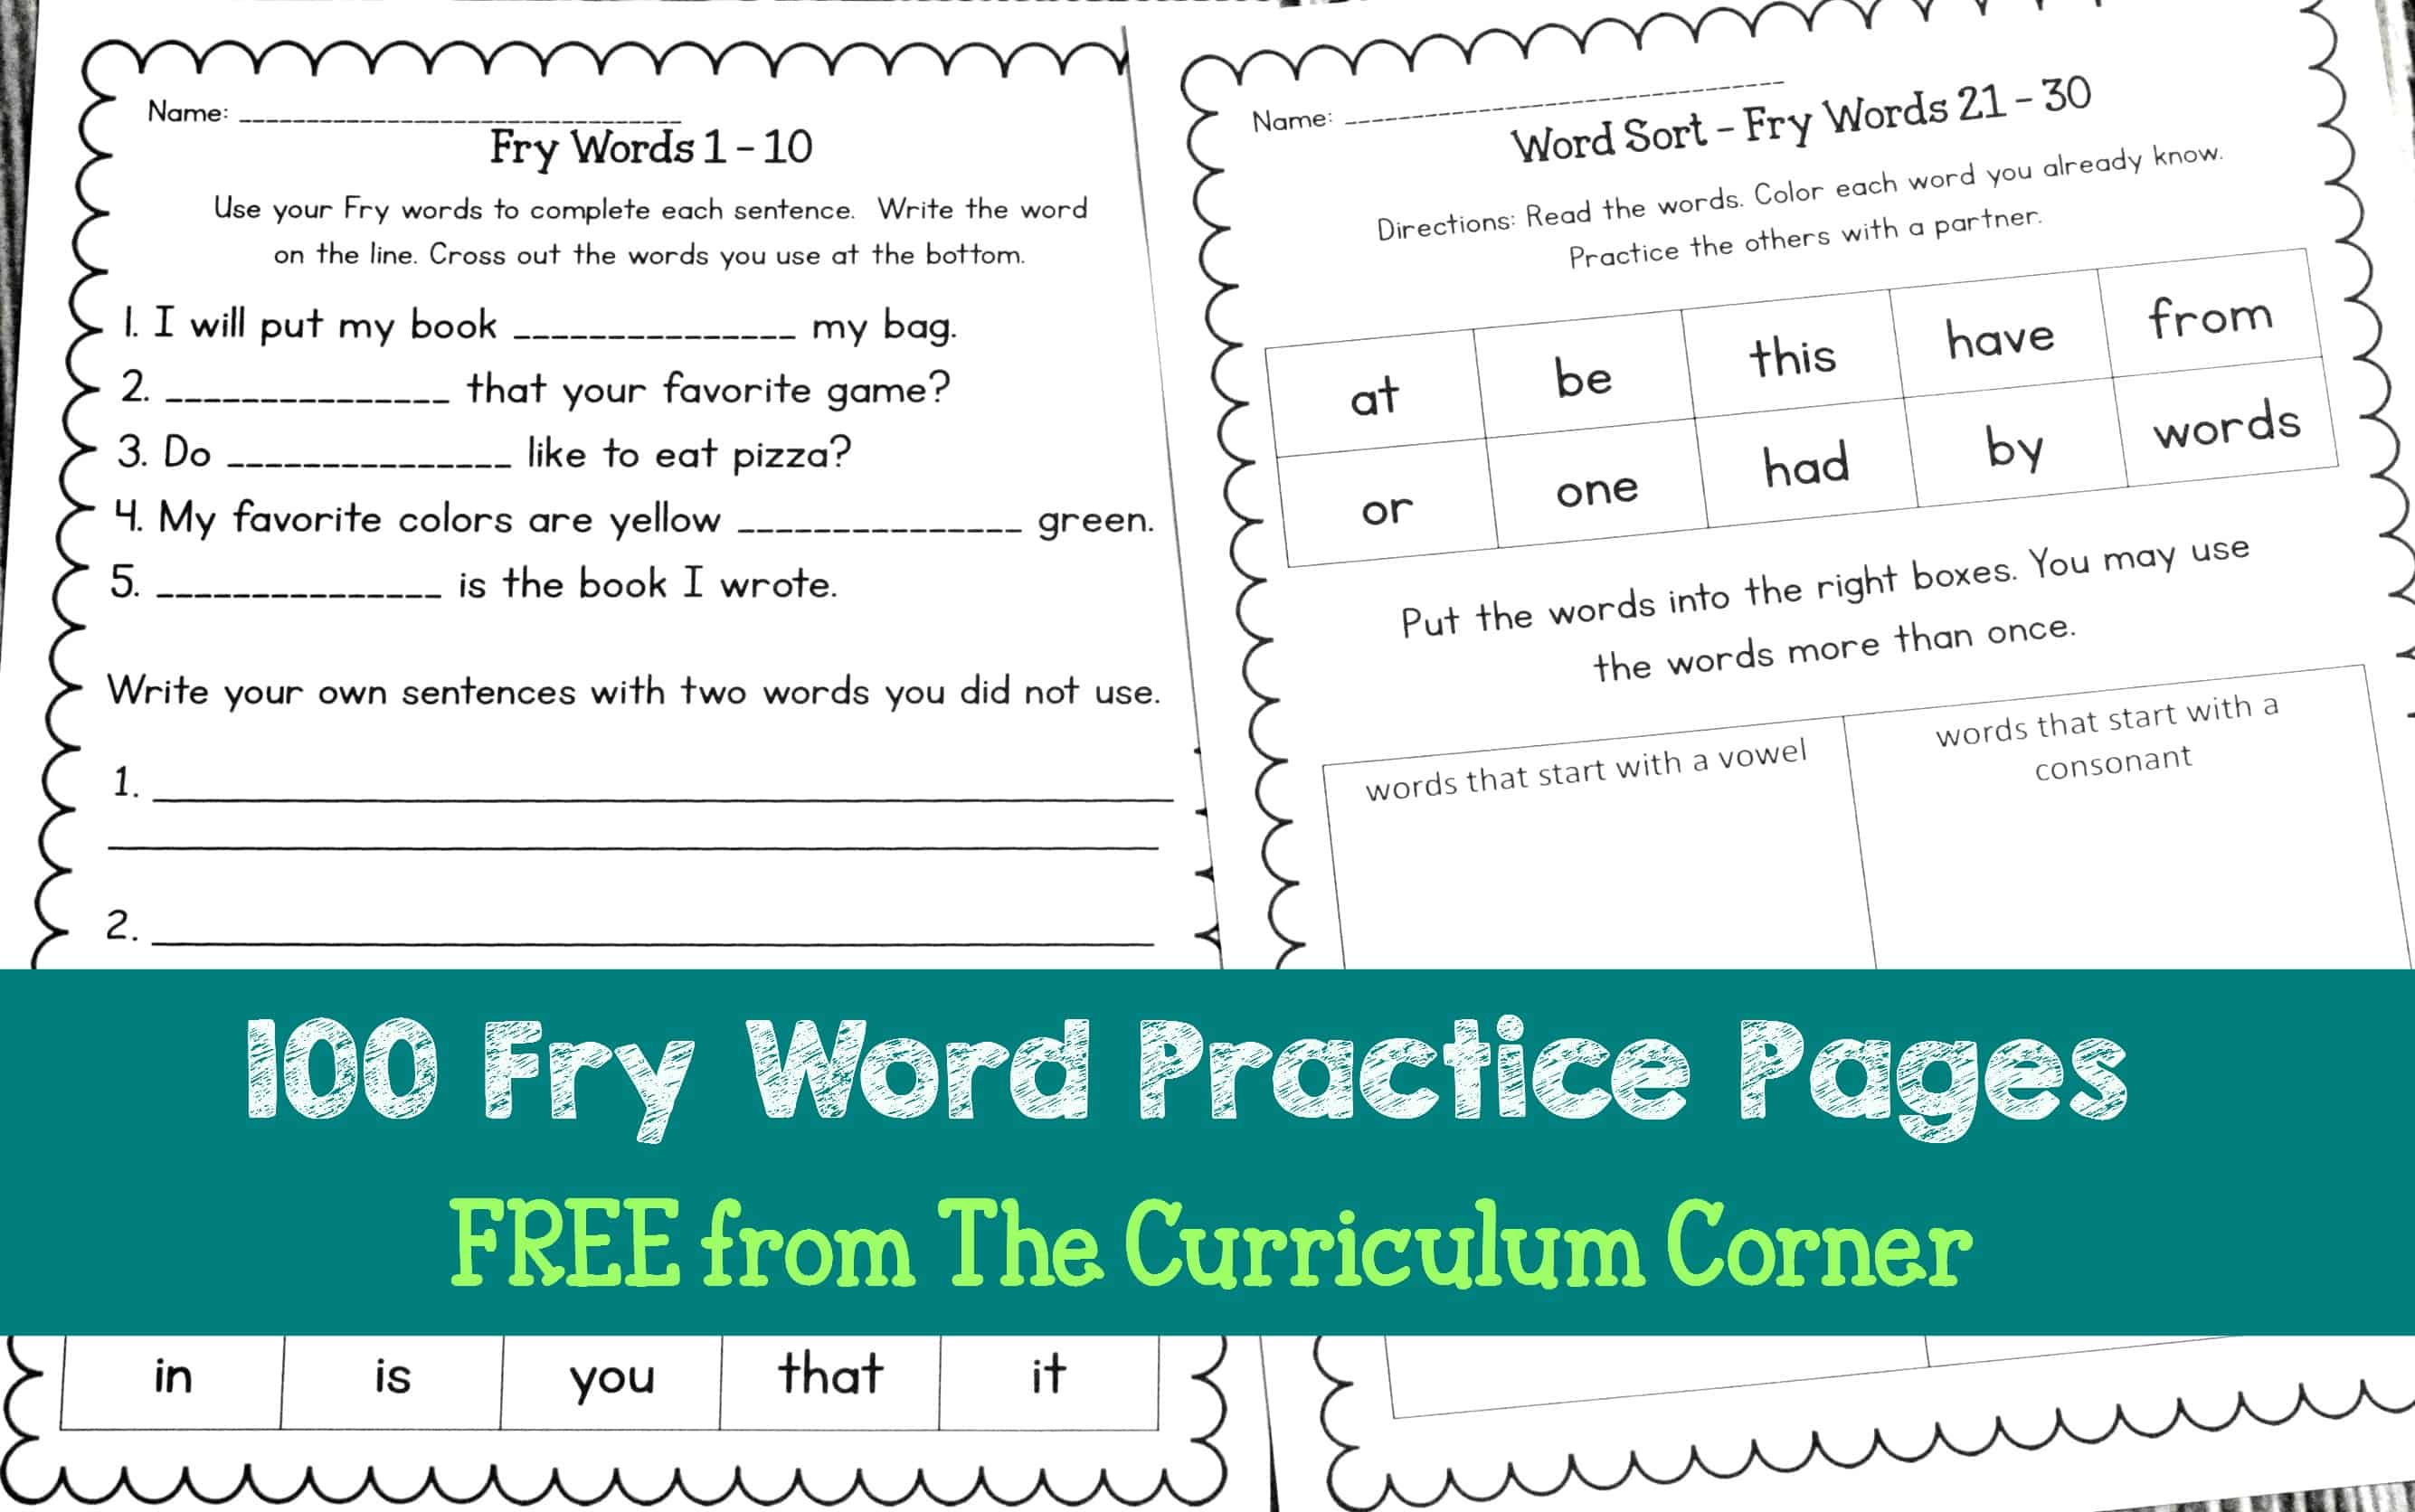 hight resolution of Fry Word Practice Pages - The Curriculum Corner 123